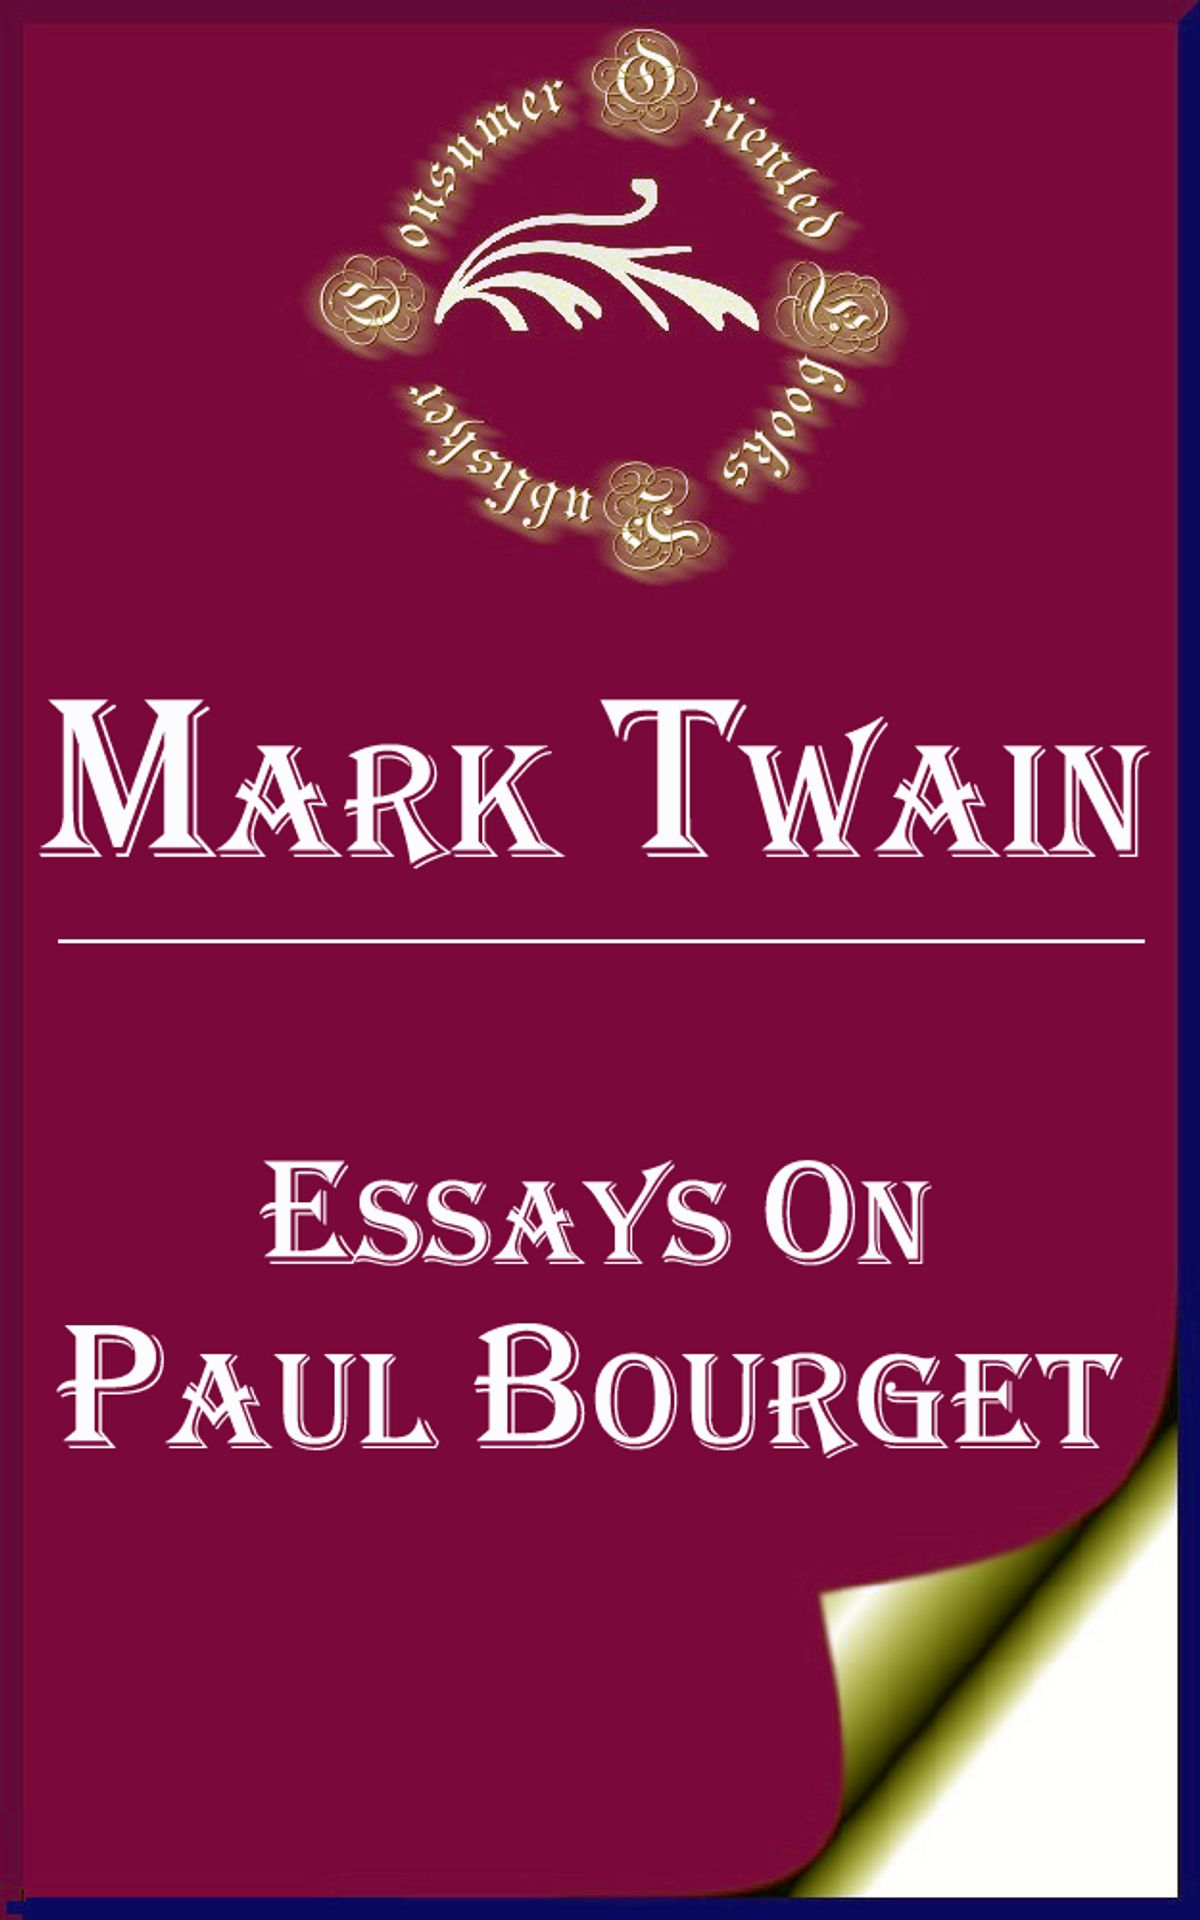 022 Mark Twain Essays Essay Example On Paul Bourget Surprising Pdf Writing Nonfiction Full